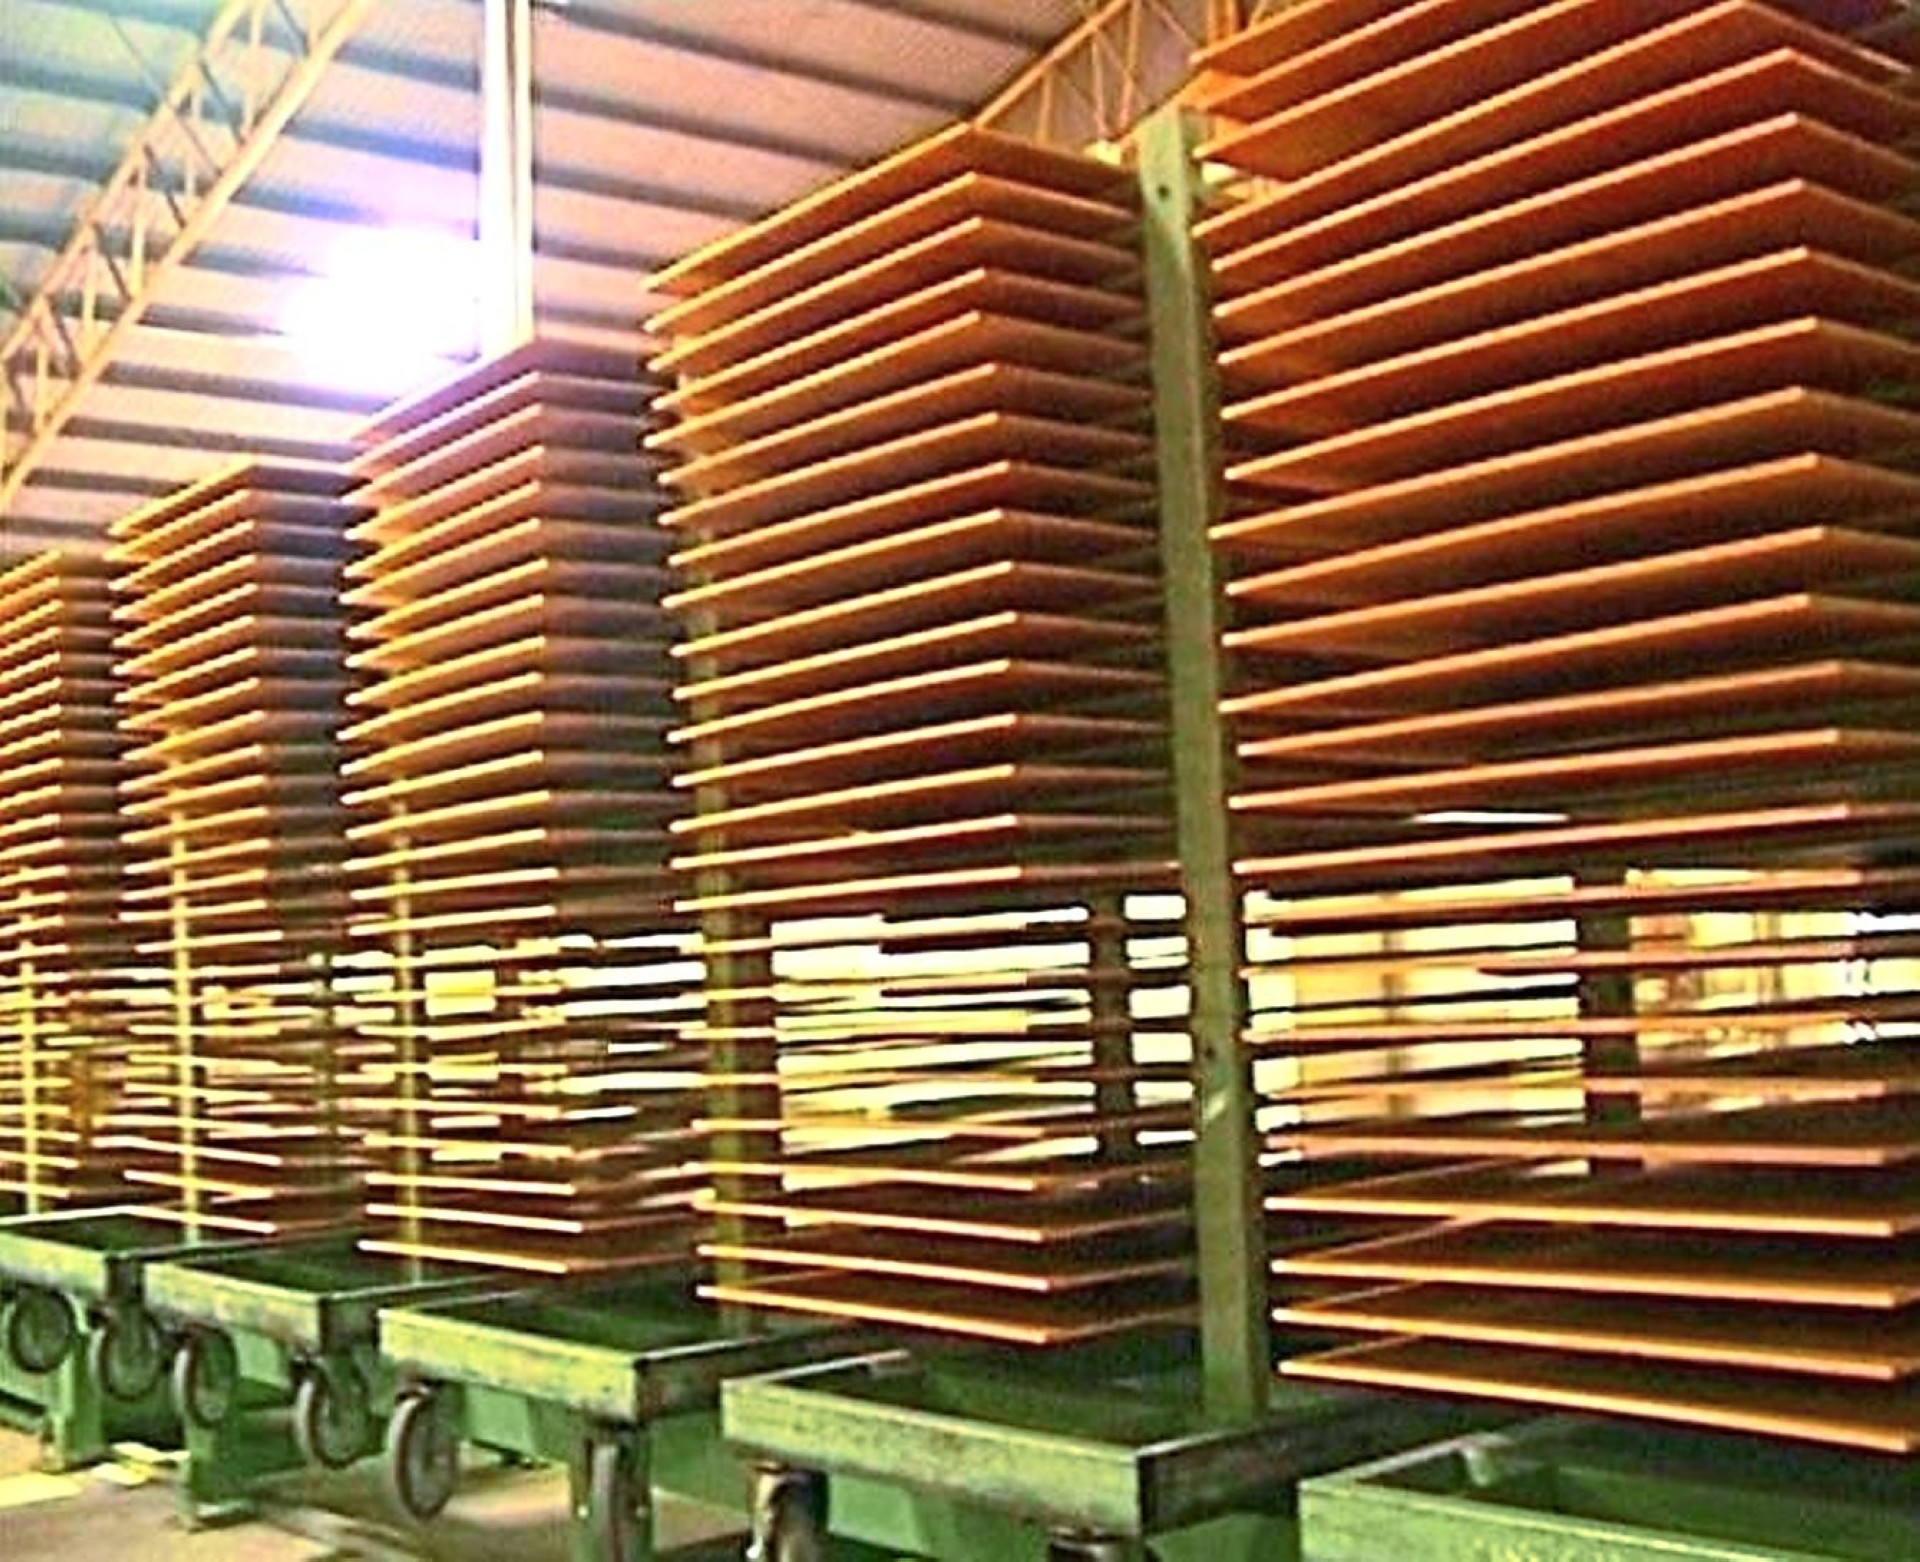 Tough times: Plywood production cost has skyrocketed due to increase in cost of logs and labour as mill operations are labour-intensive.